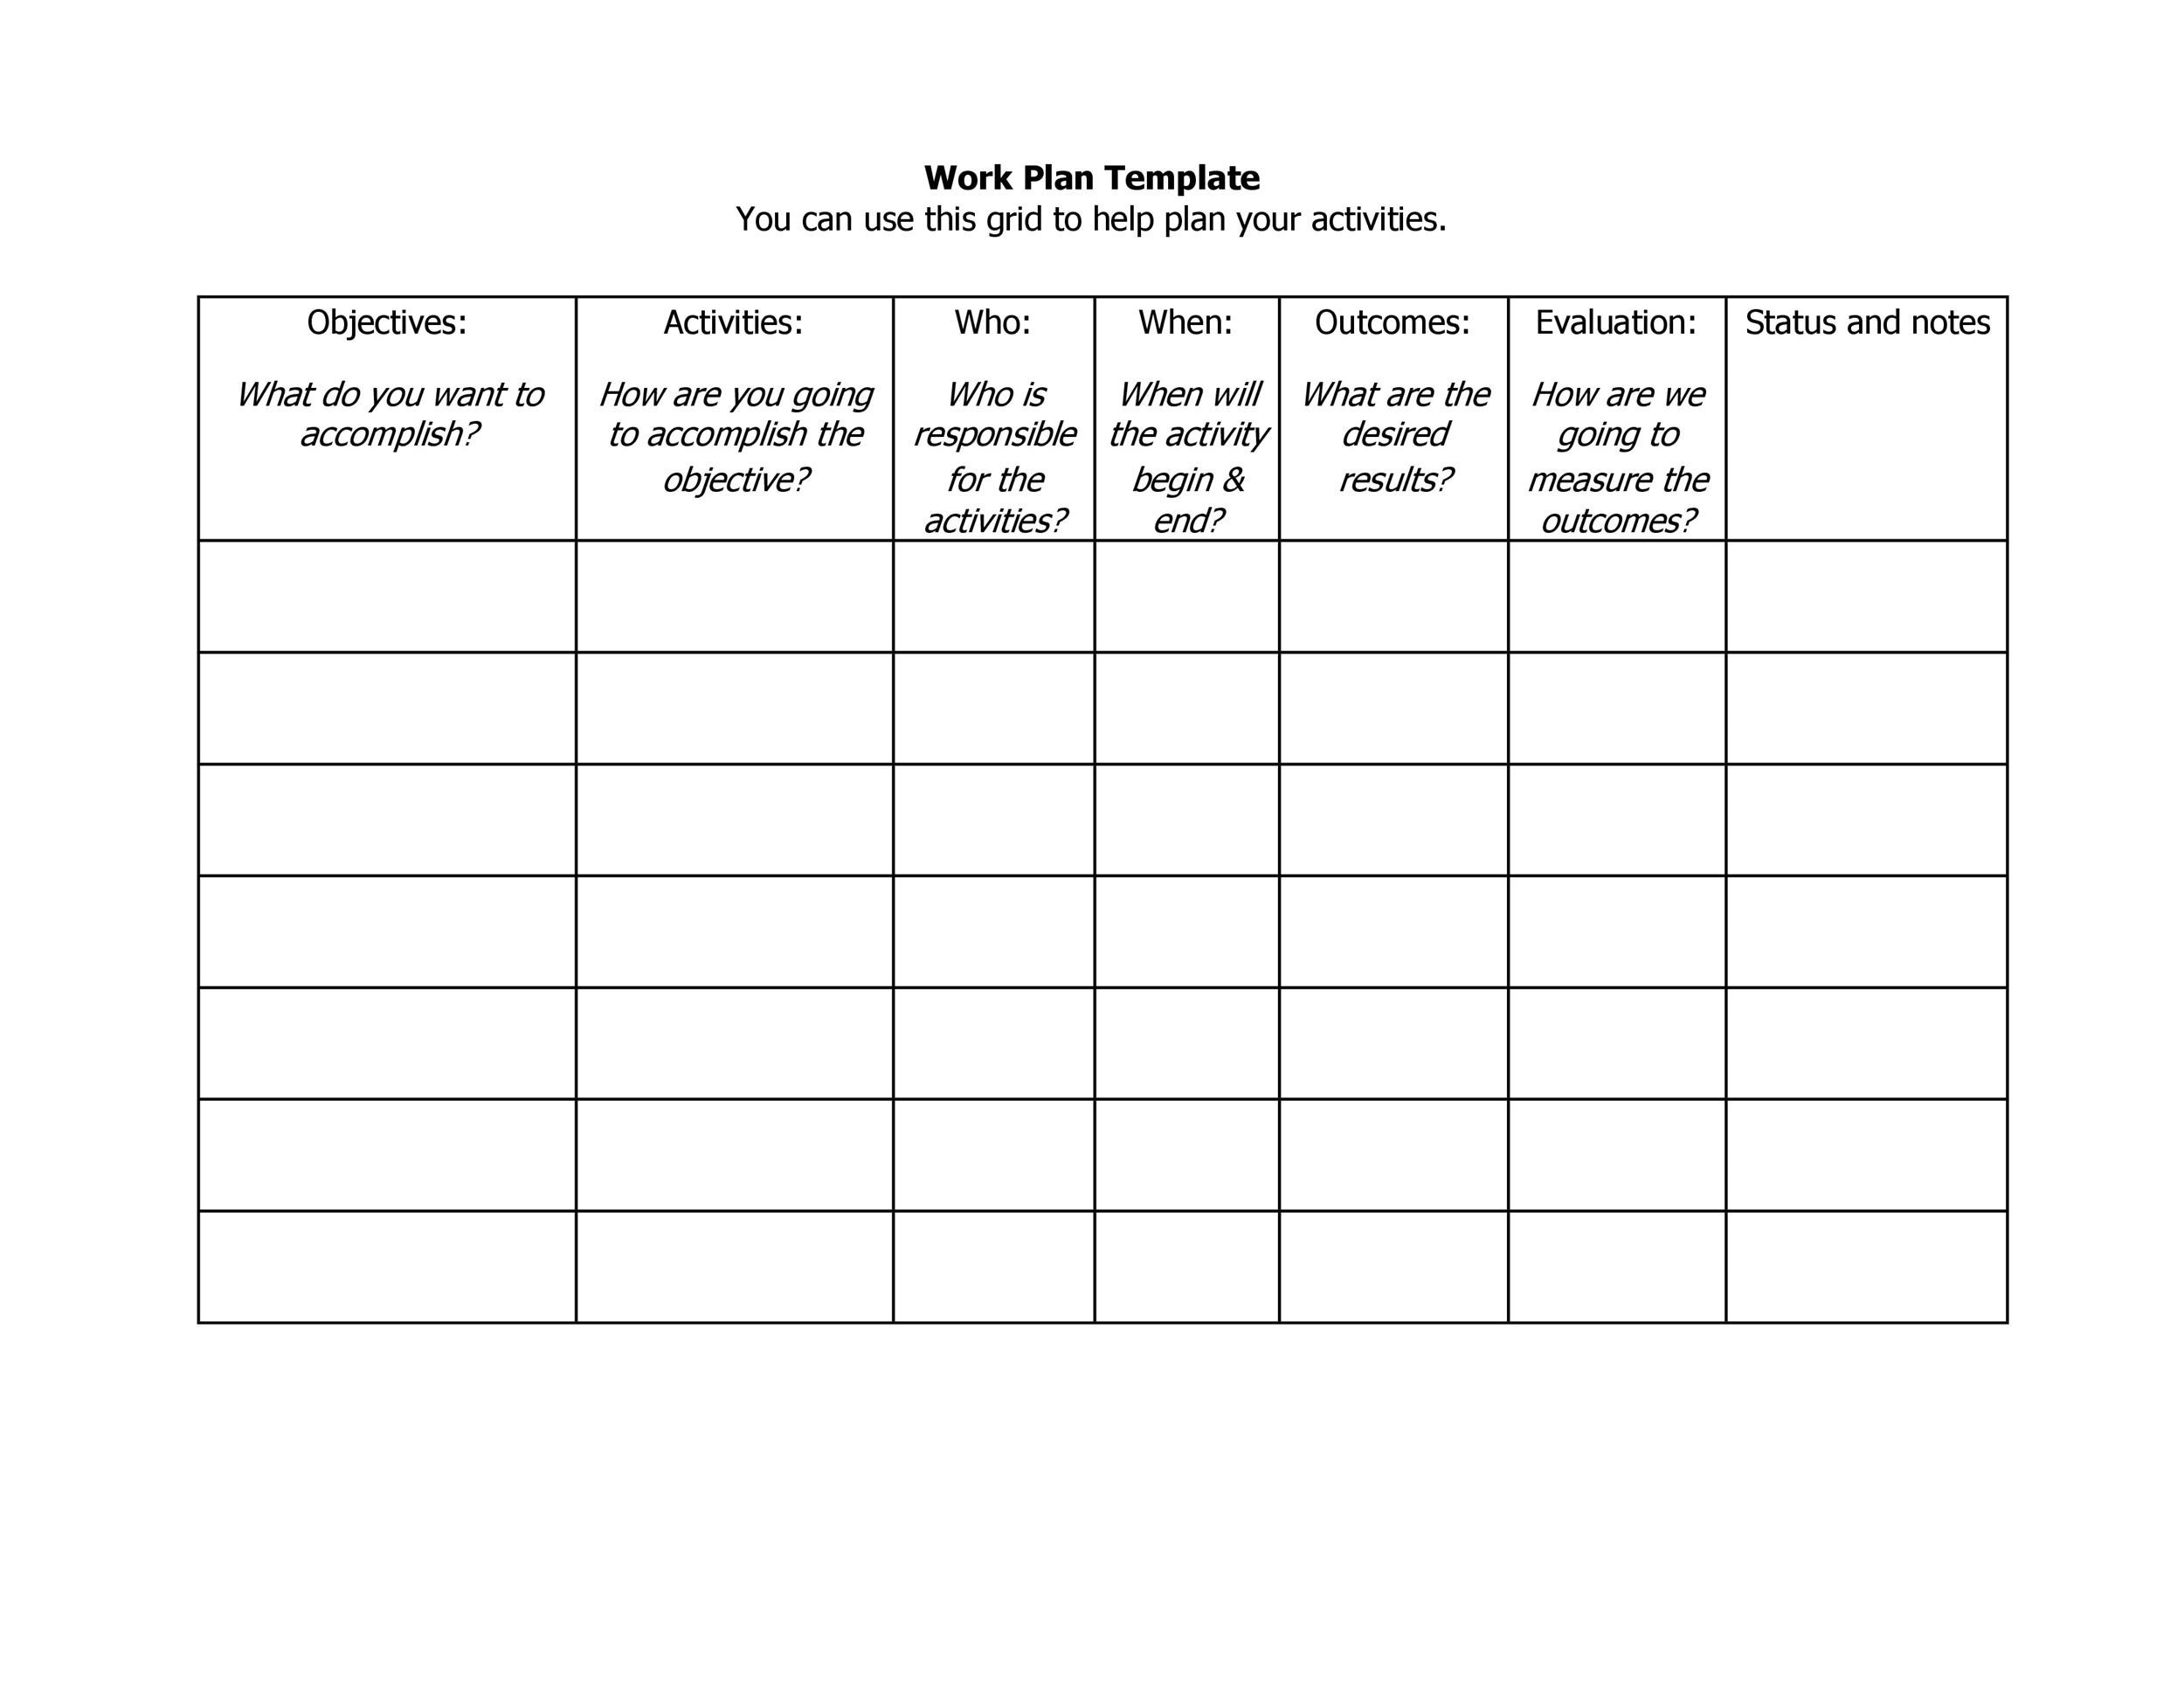 Work Plan - 40 Great Templates & Samples (Excel / Word) - Template Lab